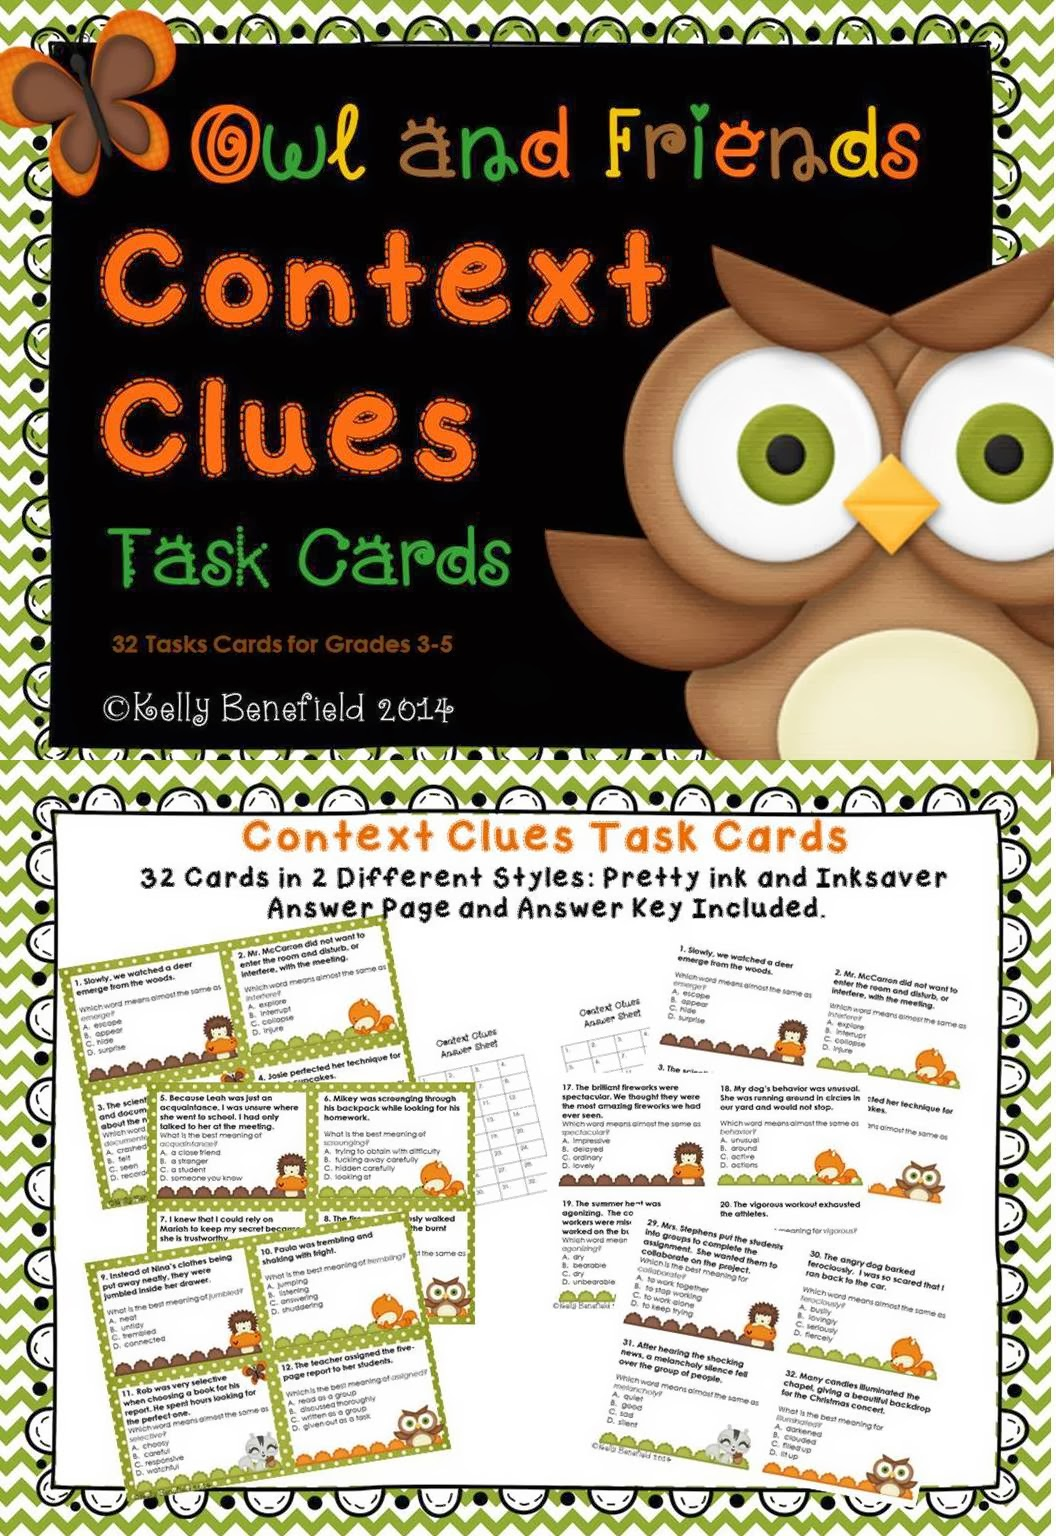 http://www.teacherspayteachers.com/Product/Context-Clues-Task-Cards-1069565